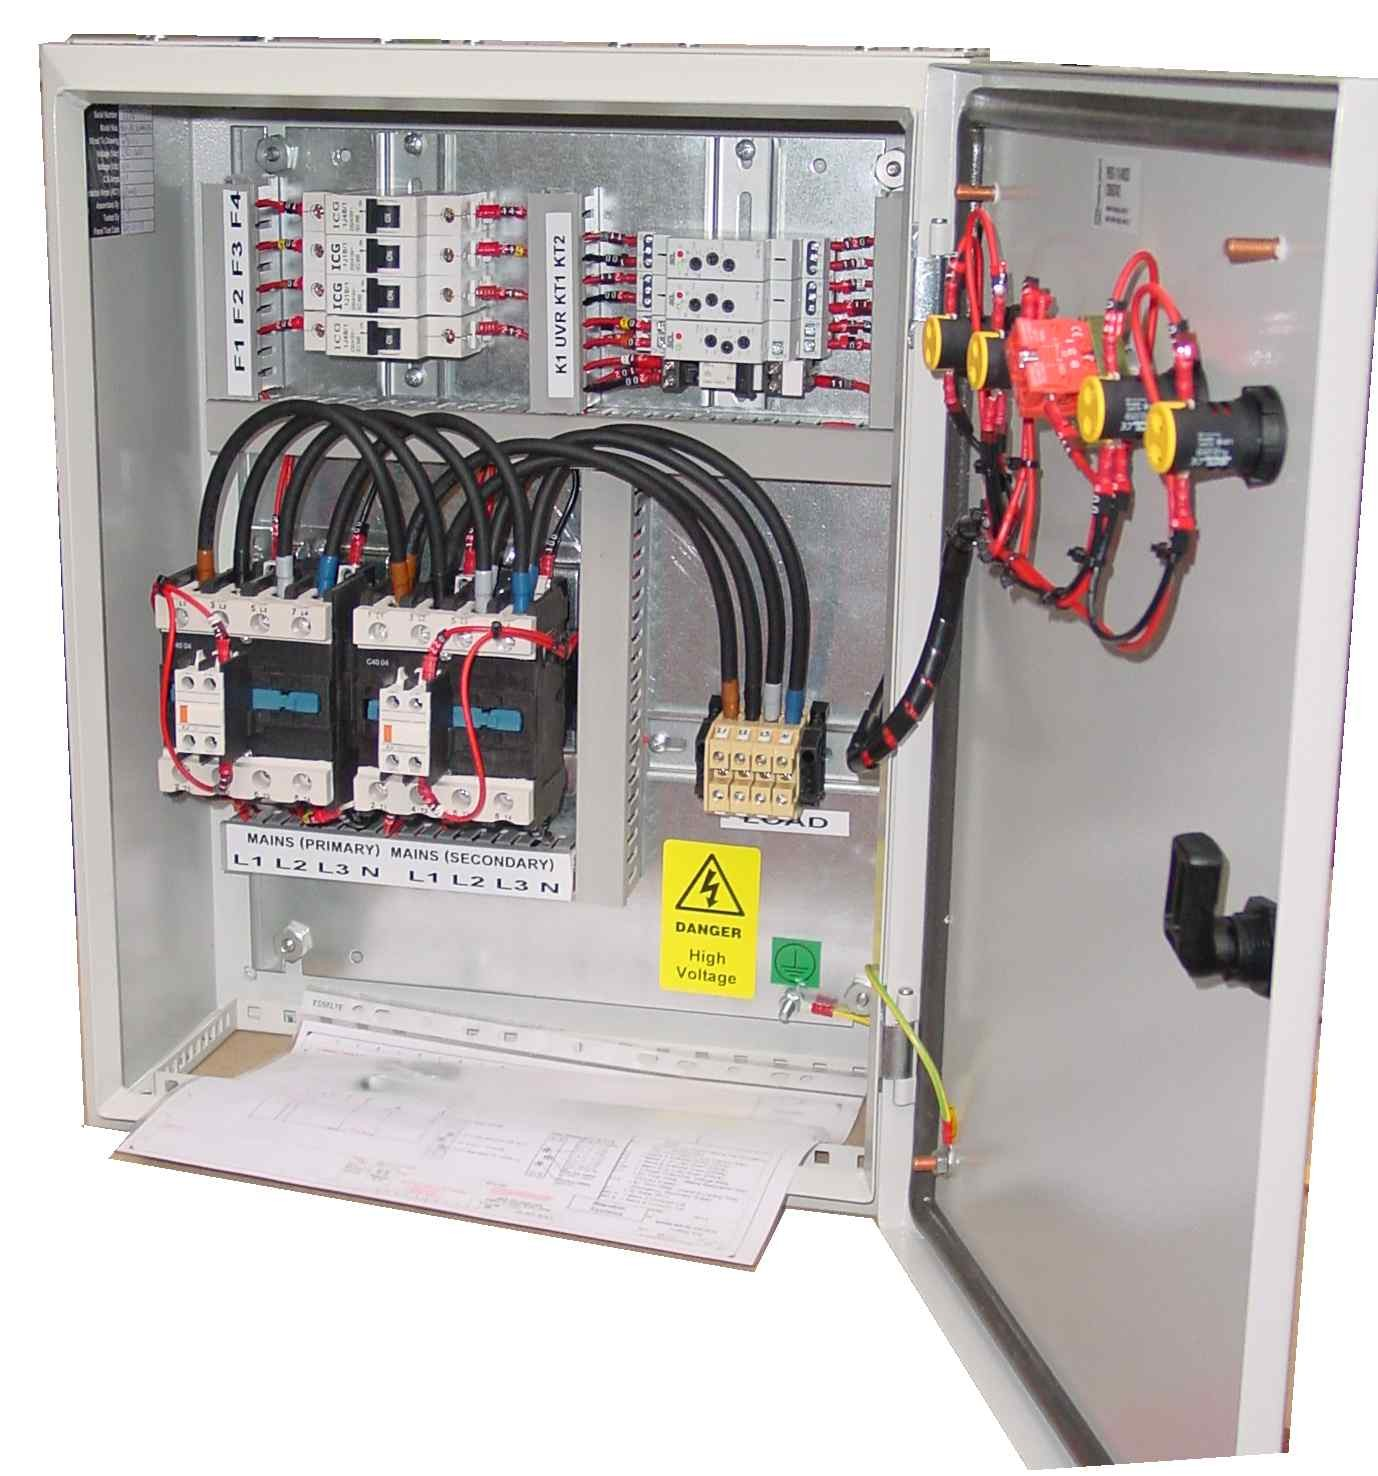 Ats 3 Phase Mains Mains Icg Contactors 40 1000a likewise Automatic Transfer Switch Diagram in addition Pontiac Firebird 1999 2002 Fuse Box Diagram 417891 besides Difference Between Mcb Mccb According To Iec Standards besides Welder 220 Volt Outlet Wiring Diagram. on electric range breaker wiring diagram